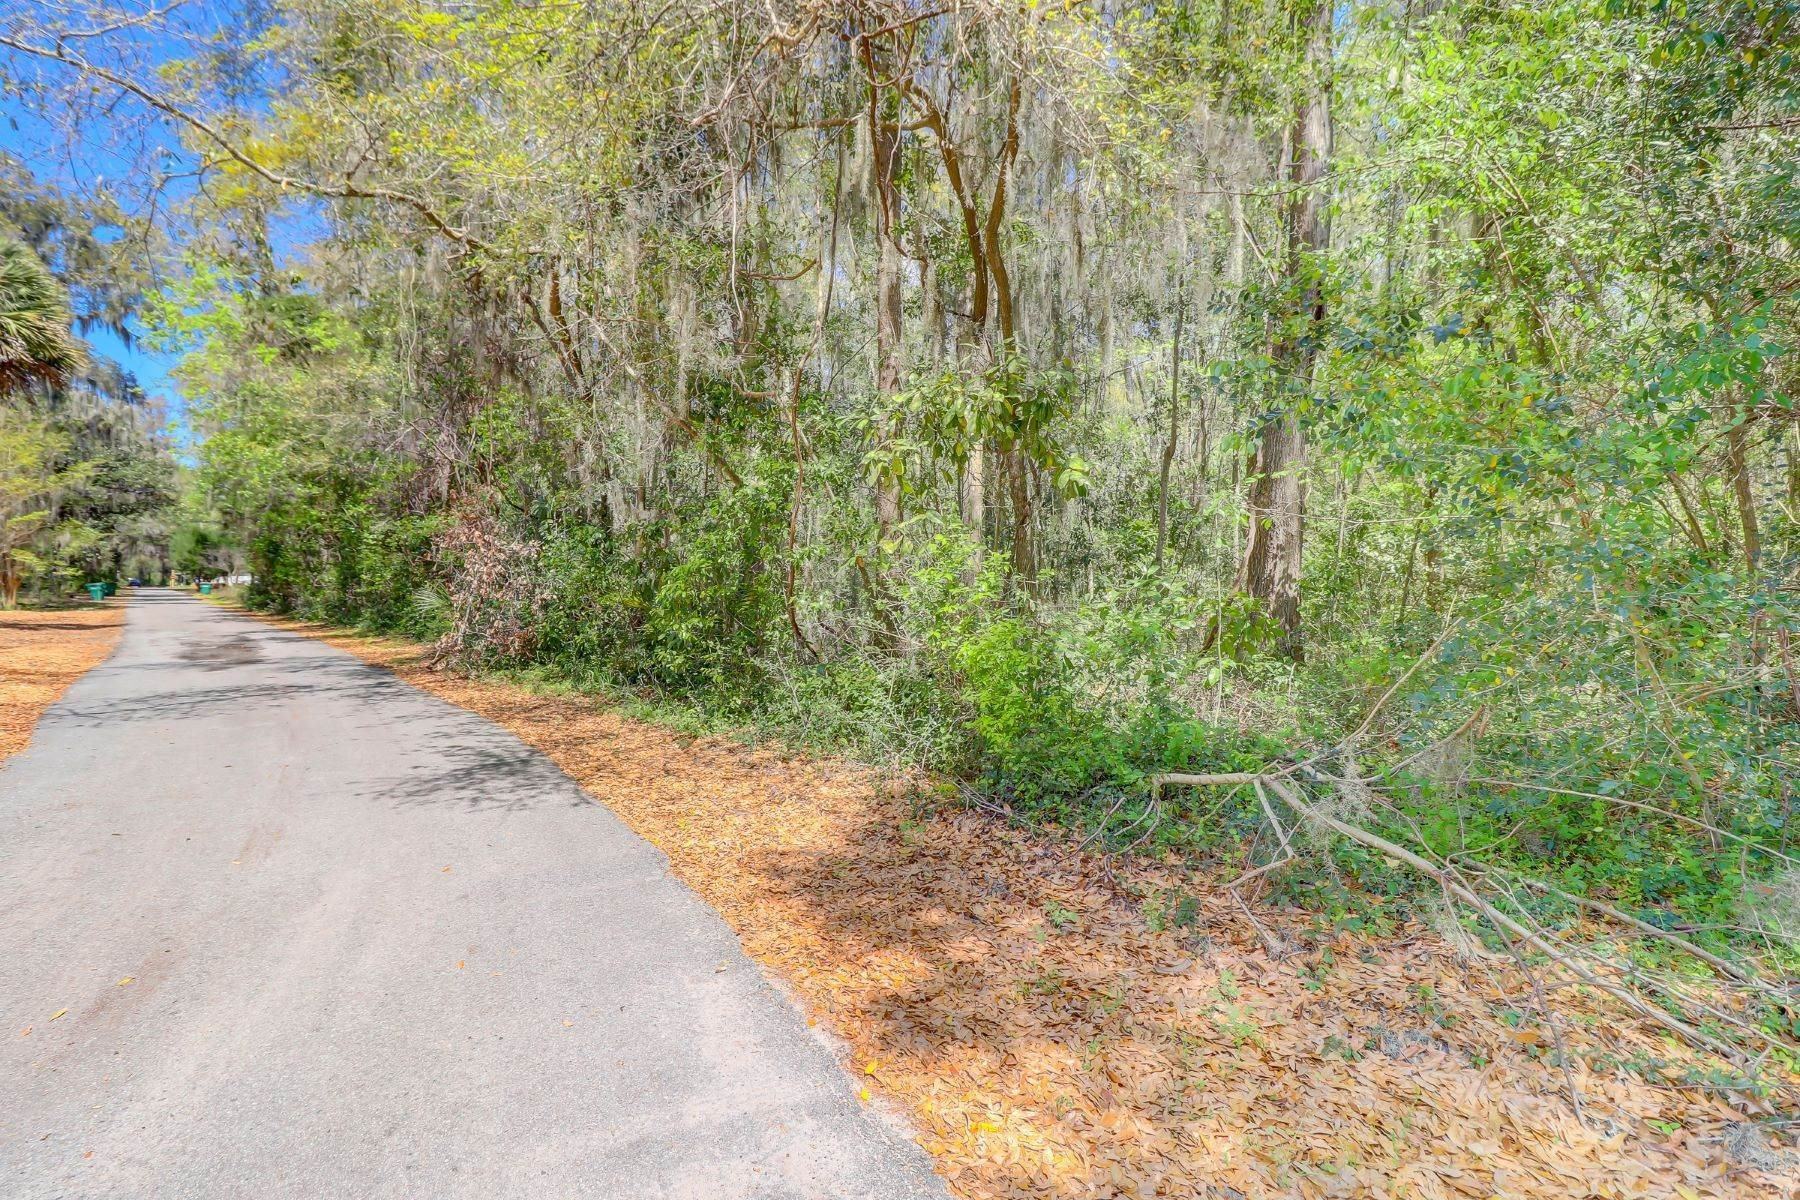 Property for Sale at 25 Maiden Lane Bluffton, South Carolina 29910 United States